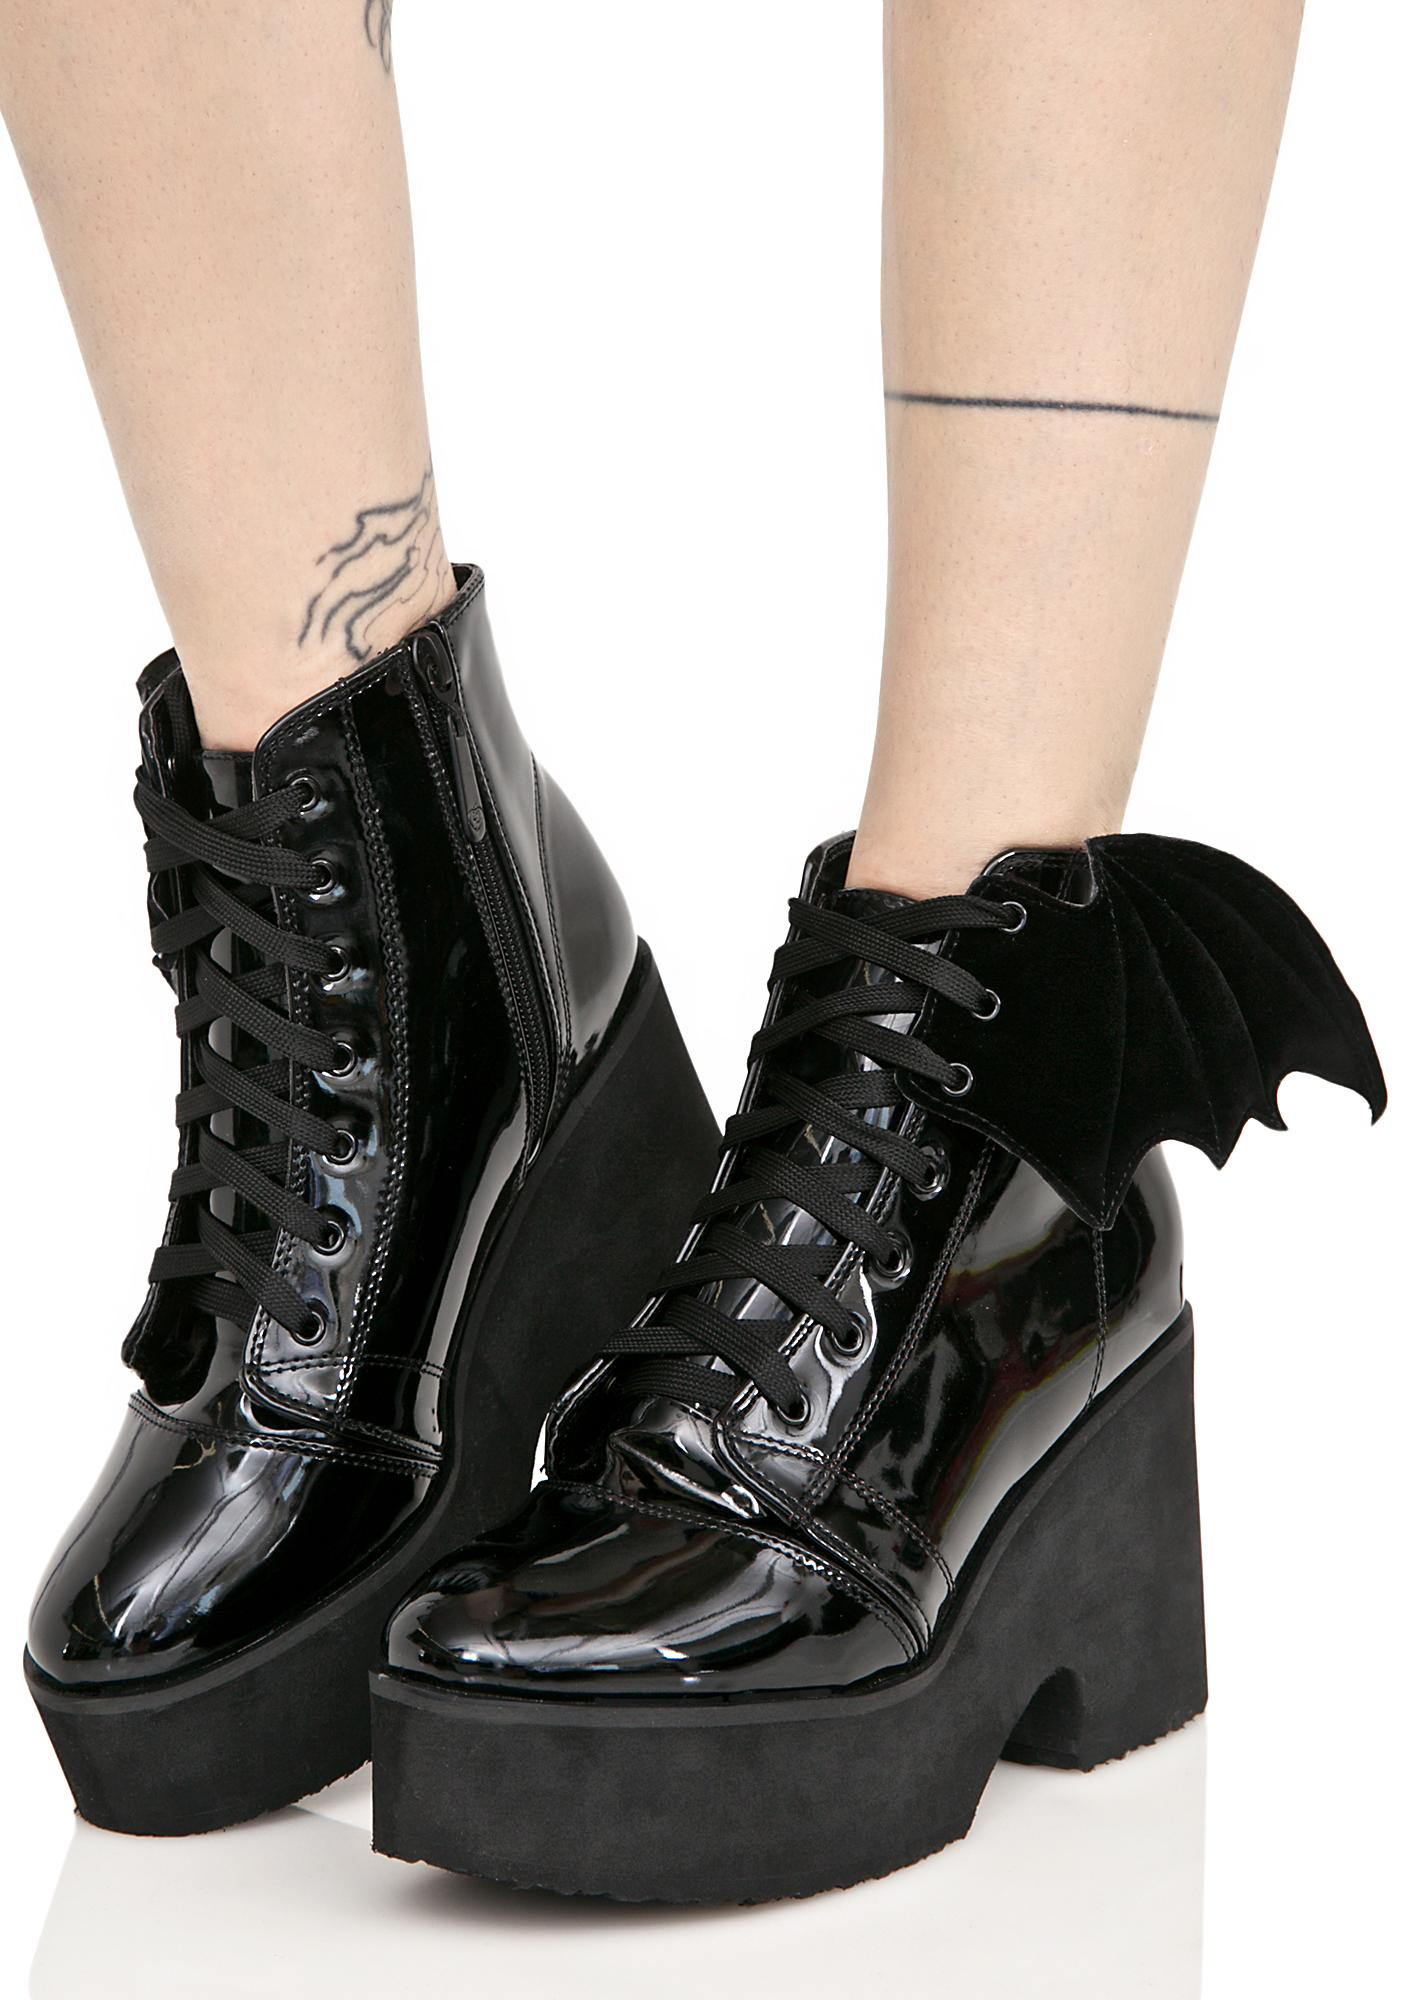 Iron Fist Patent Bat Wing Platform Boots